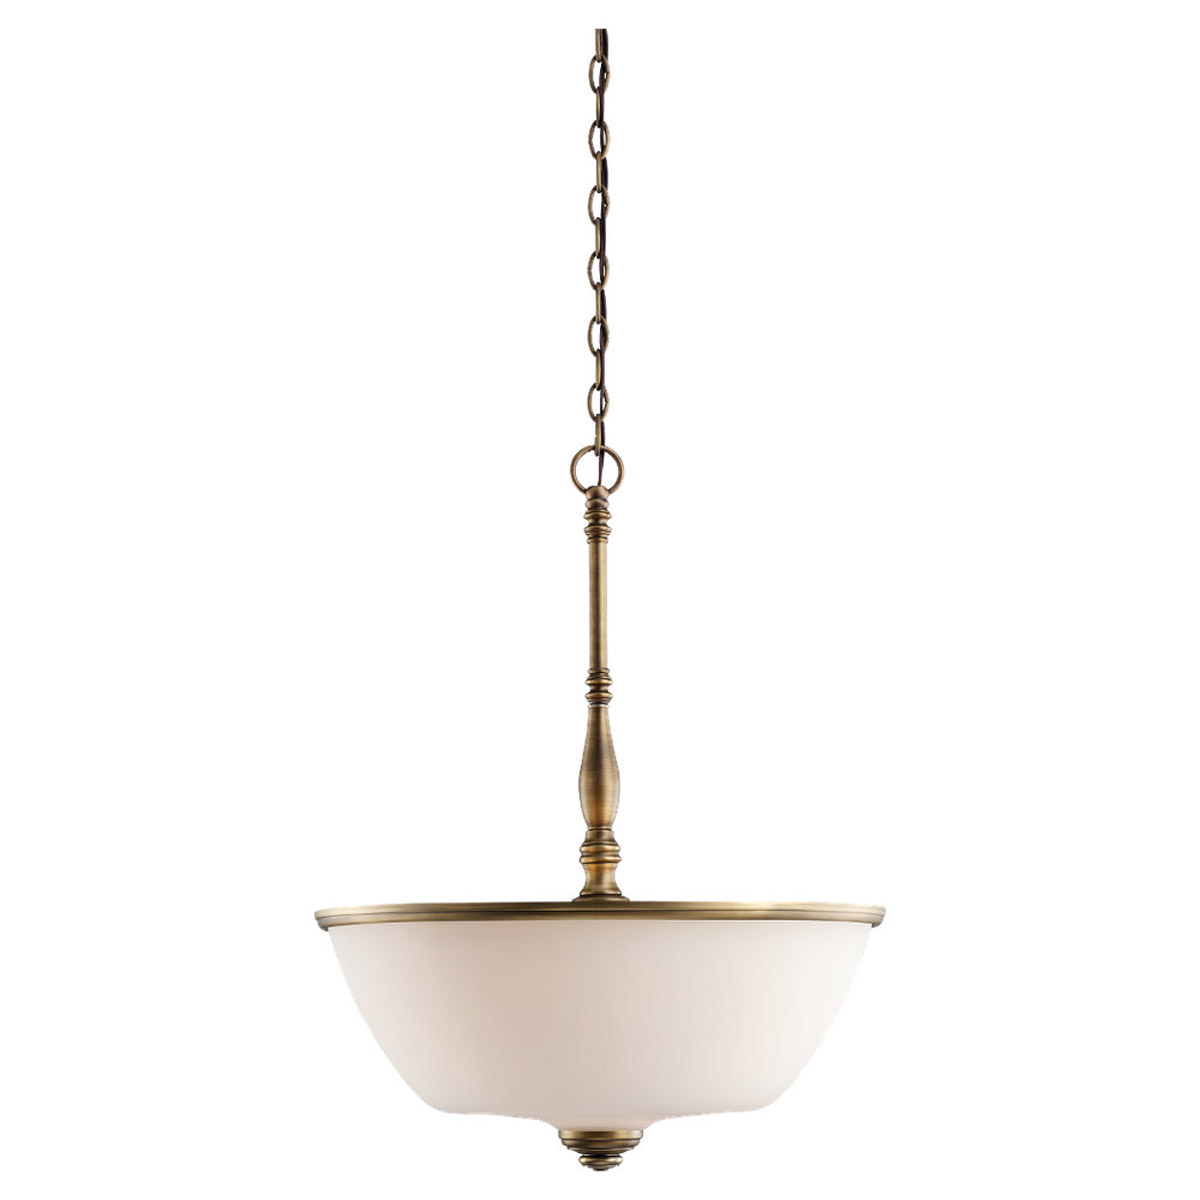 Sea Gull Lighting Montecristo 3 Light Pendant in Aged Bronze 65886-898